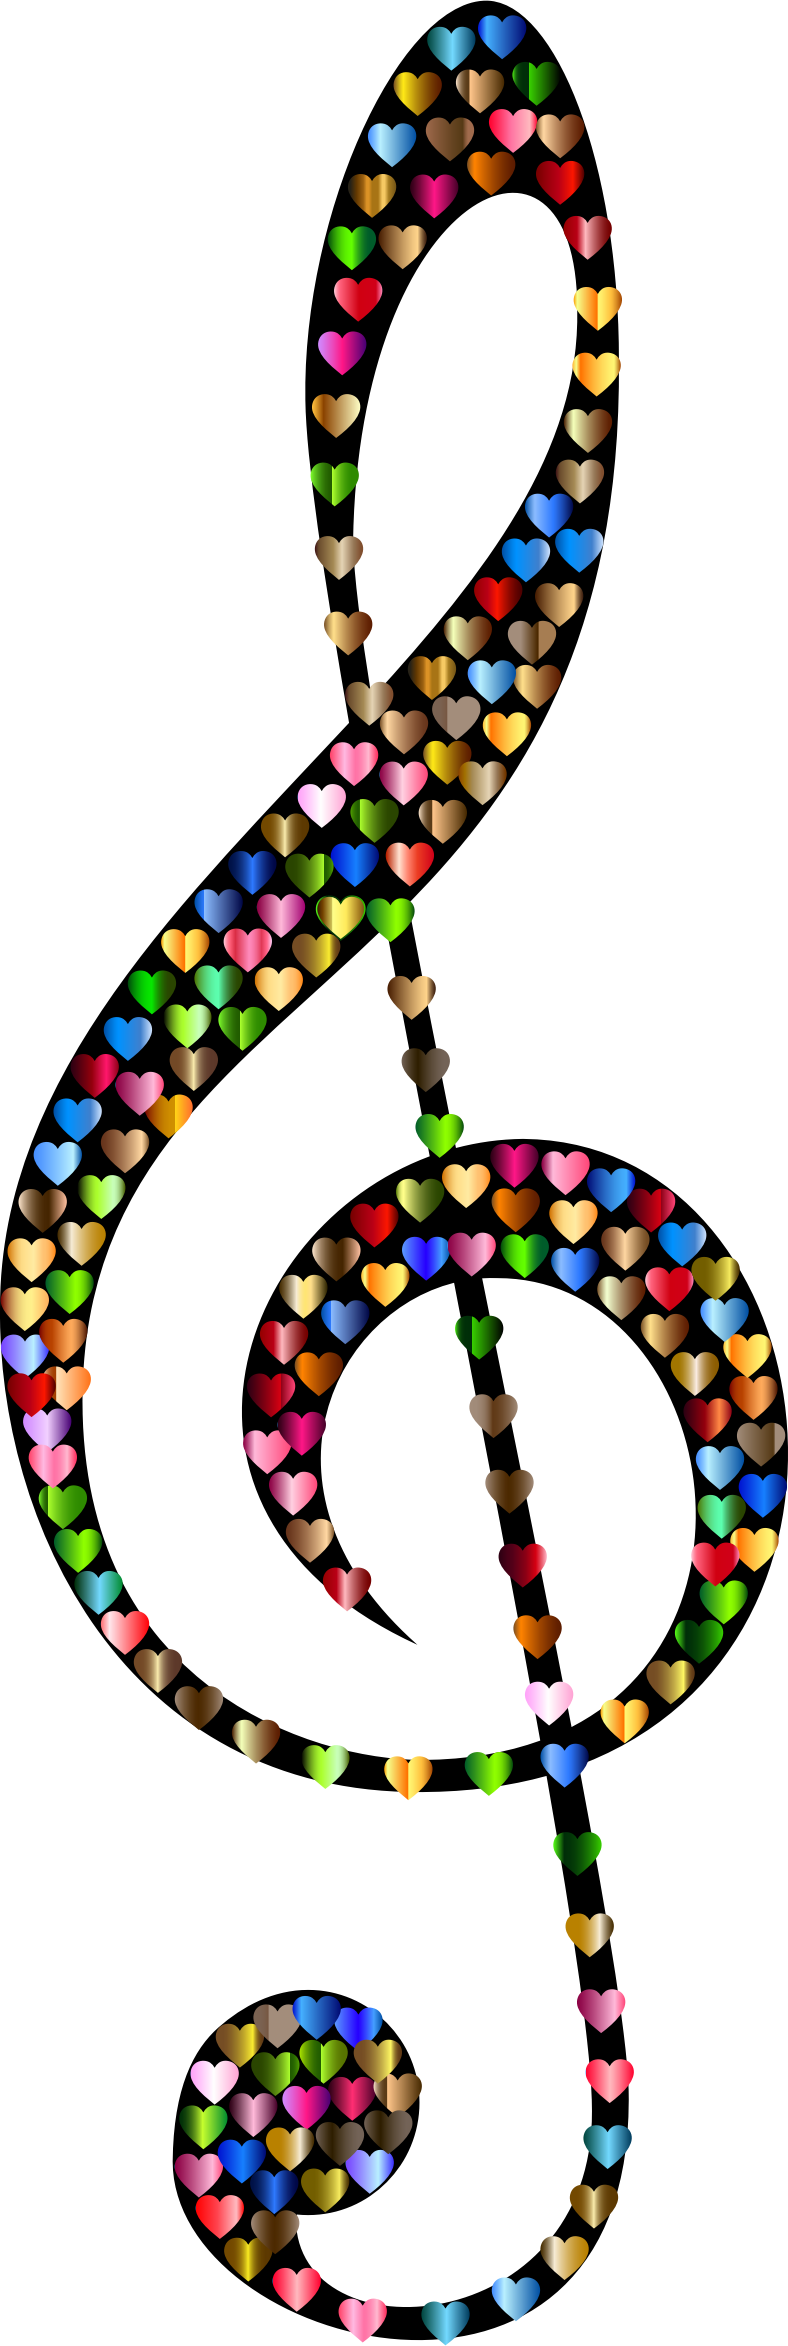 Prismatic Clef Hearts 4 by GDJ